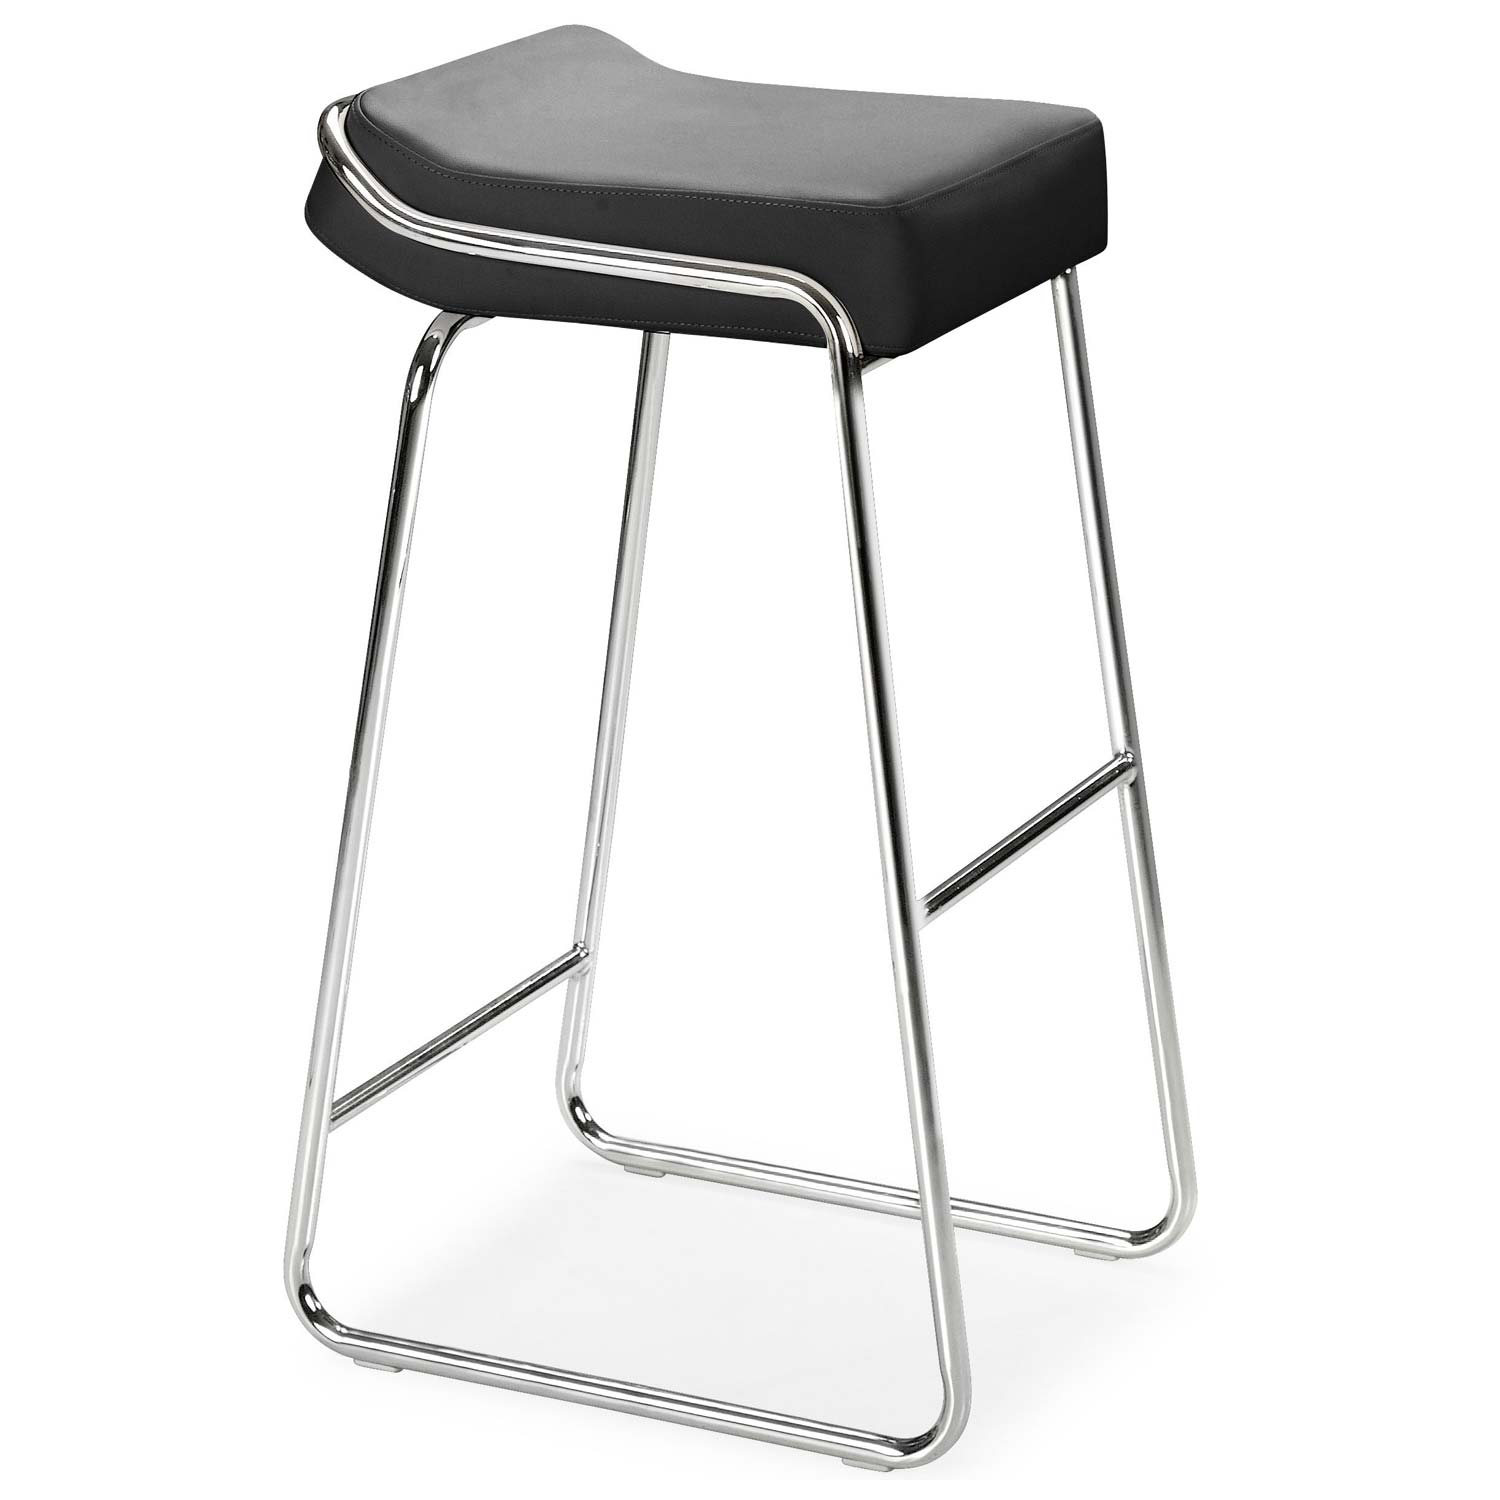 Piano 32  Backless Bar Stool - Chrome Leatherette  sc 1 st  DCG Stores & Extra Tall Bar Stools | DCG Stores islam-shia.org